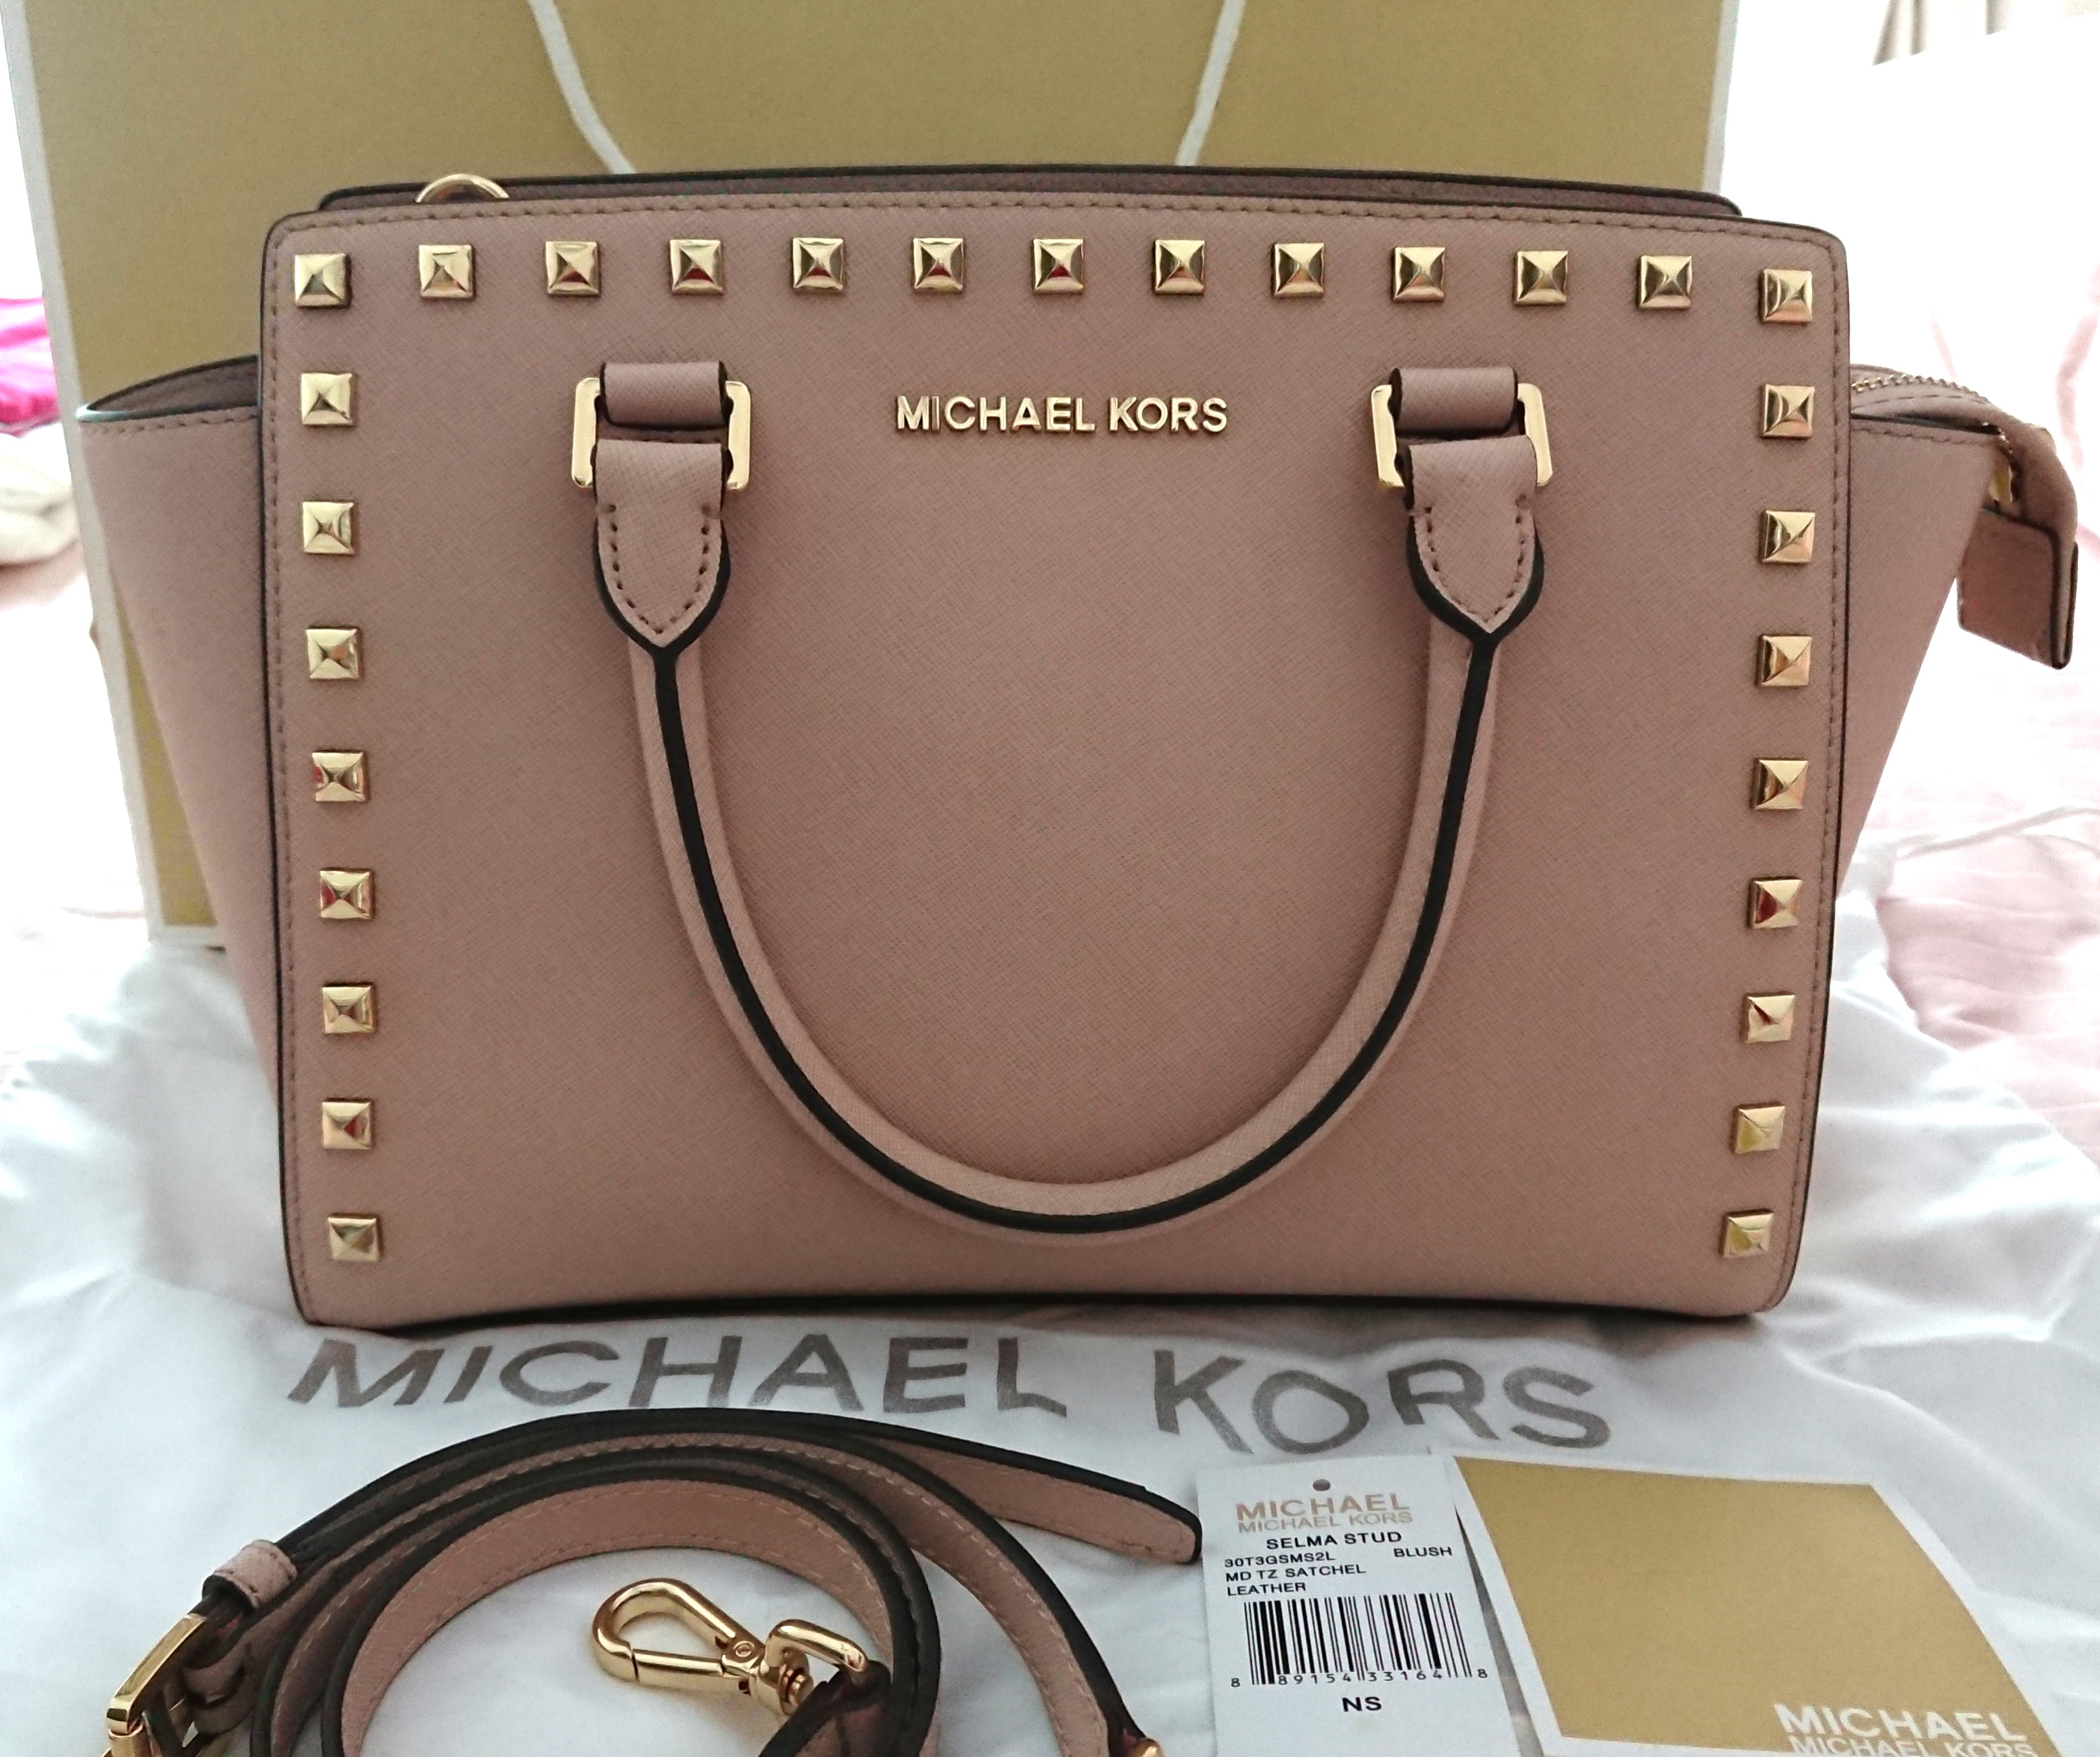 ae86c337f8dd Michael Kors Selma Stud Medium Satchel Bag Blush, Luxury, Bags & Wallets,  Handbags on Carousell